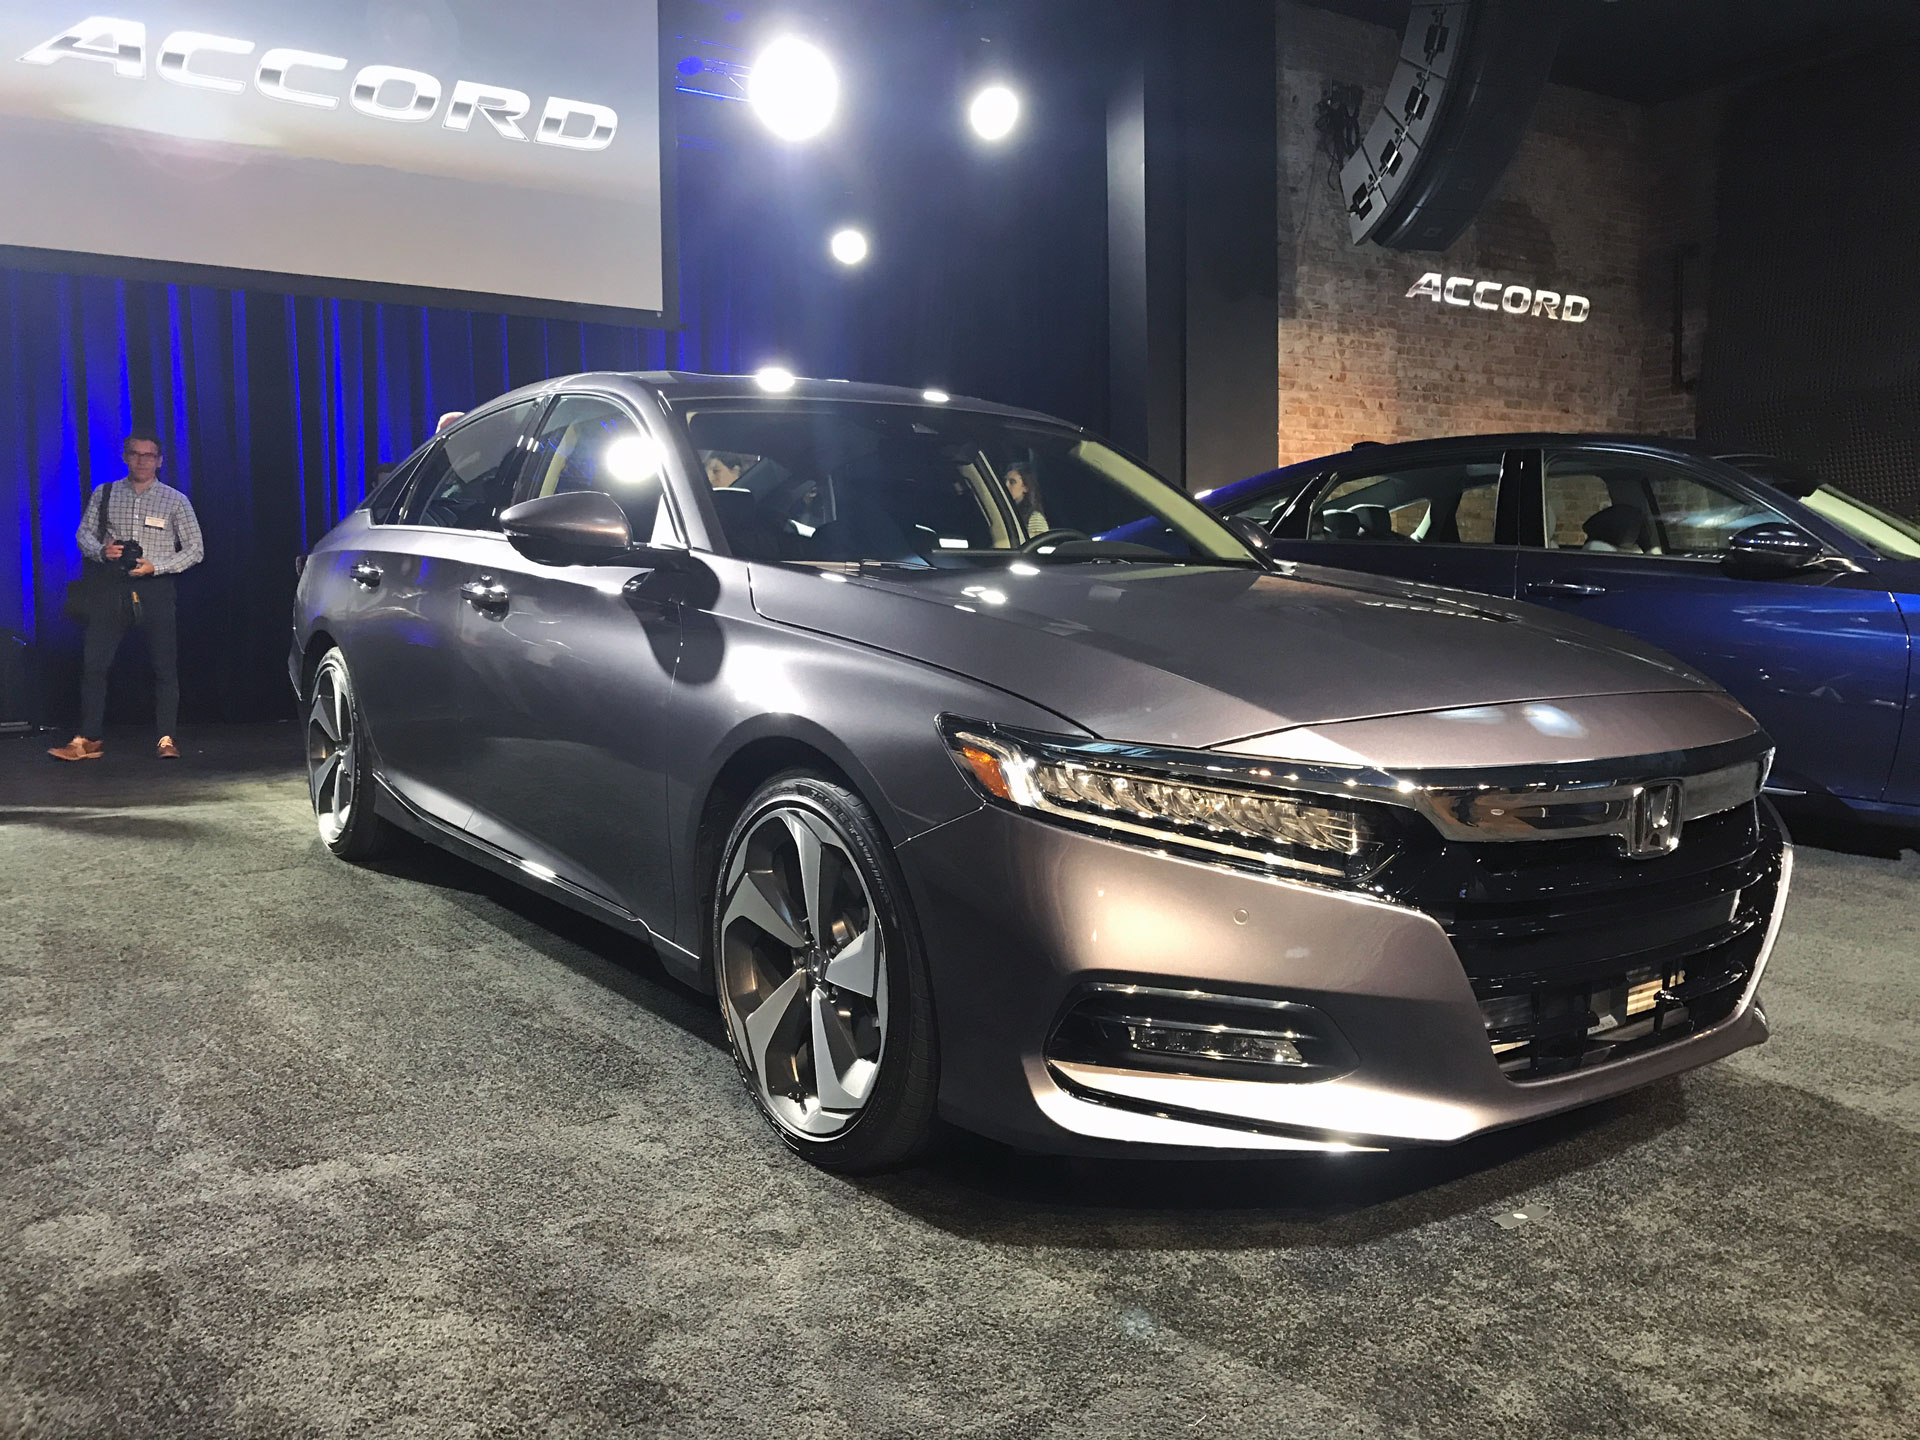 2017 Sti Lowered >> 2018 Honda Accord Loses V-6 In Favor Of New 2.0-liter Turbo-four - Page 3 - NASIOC